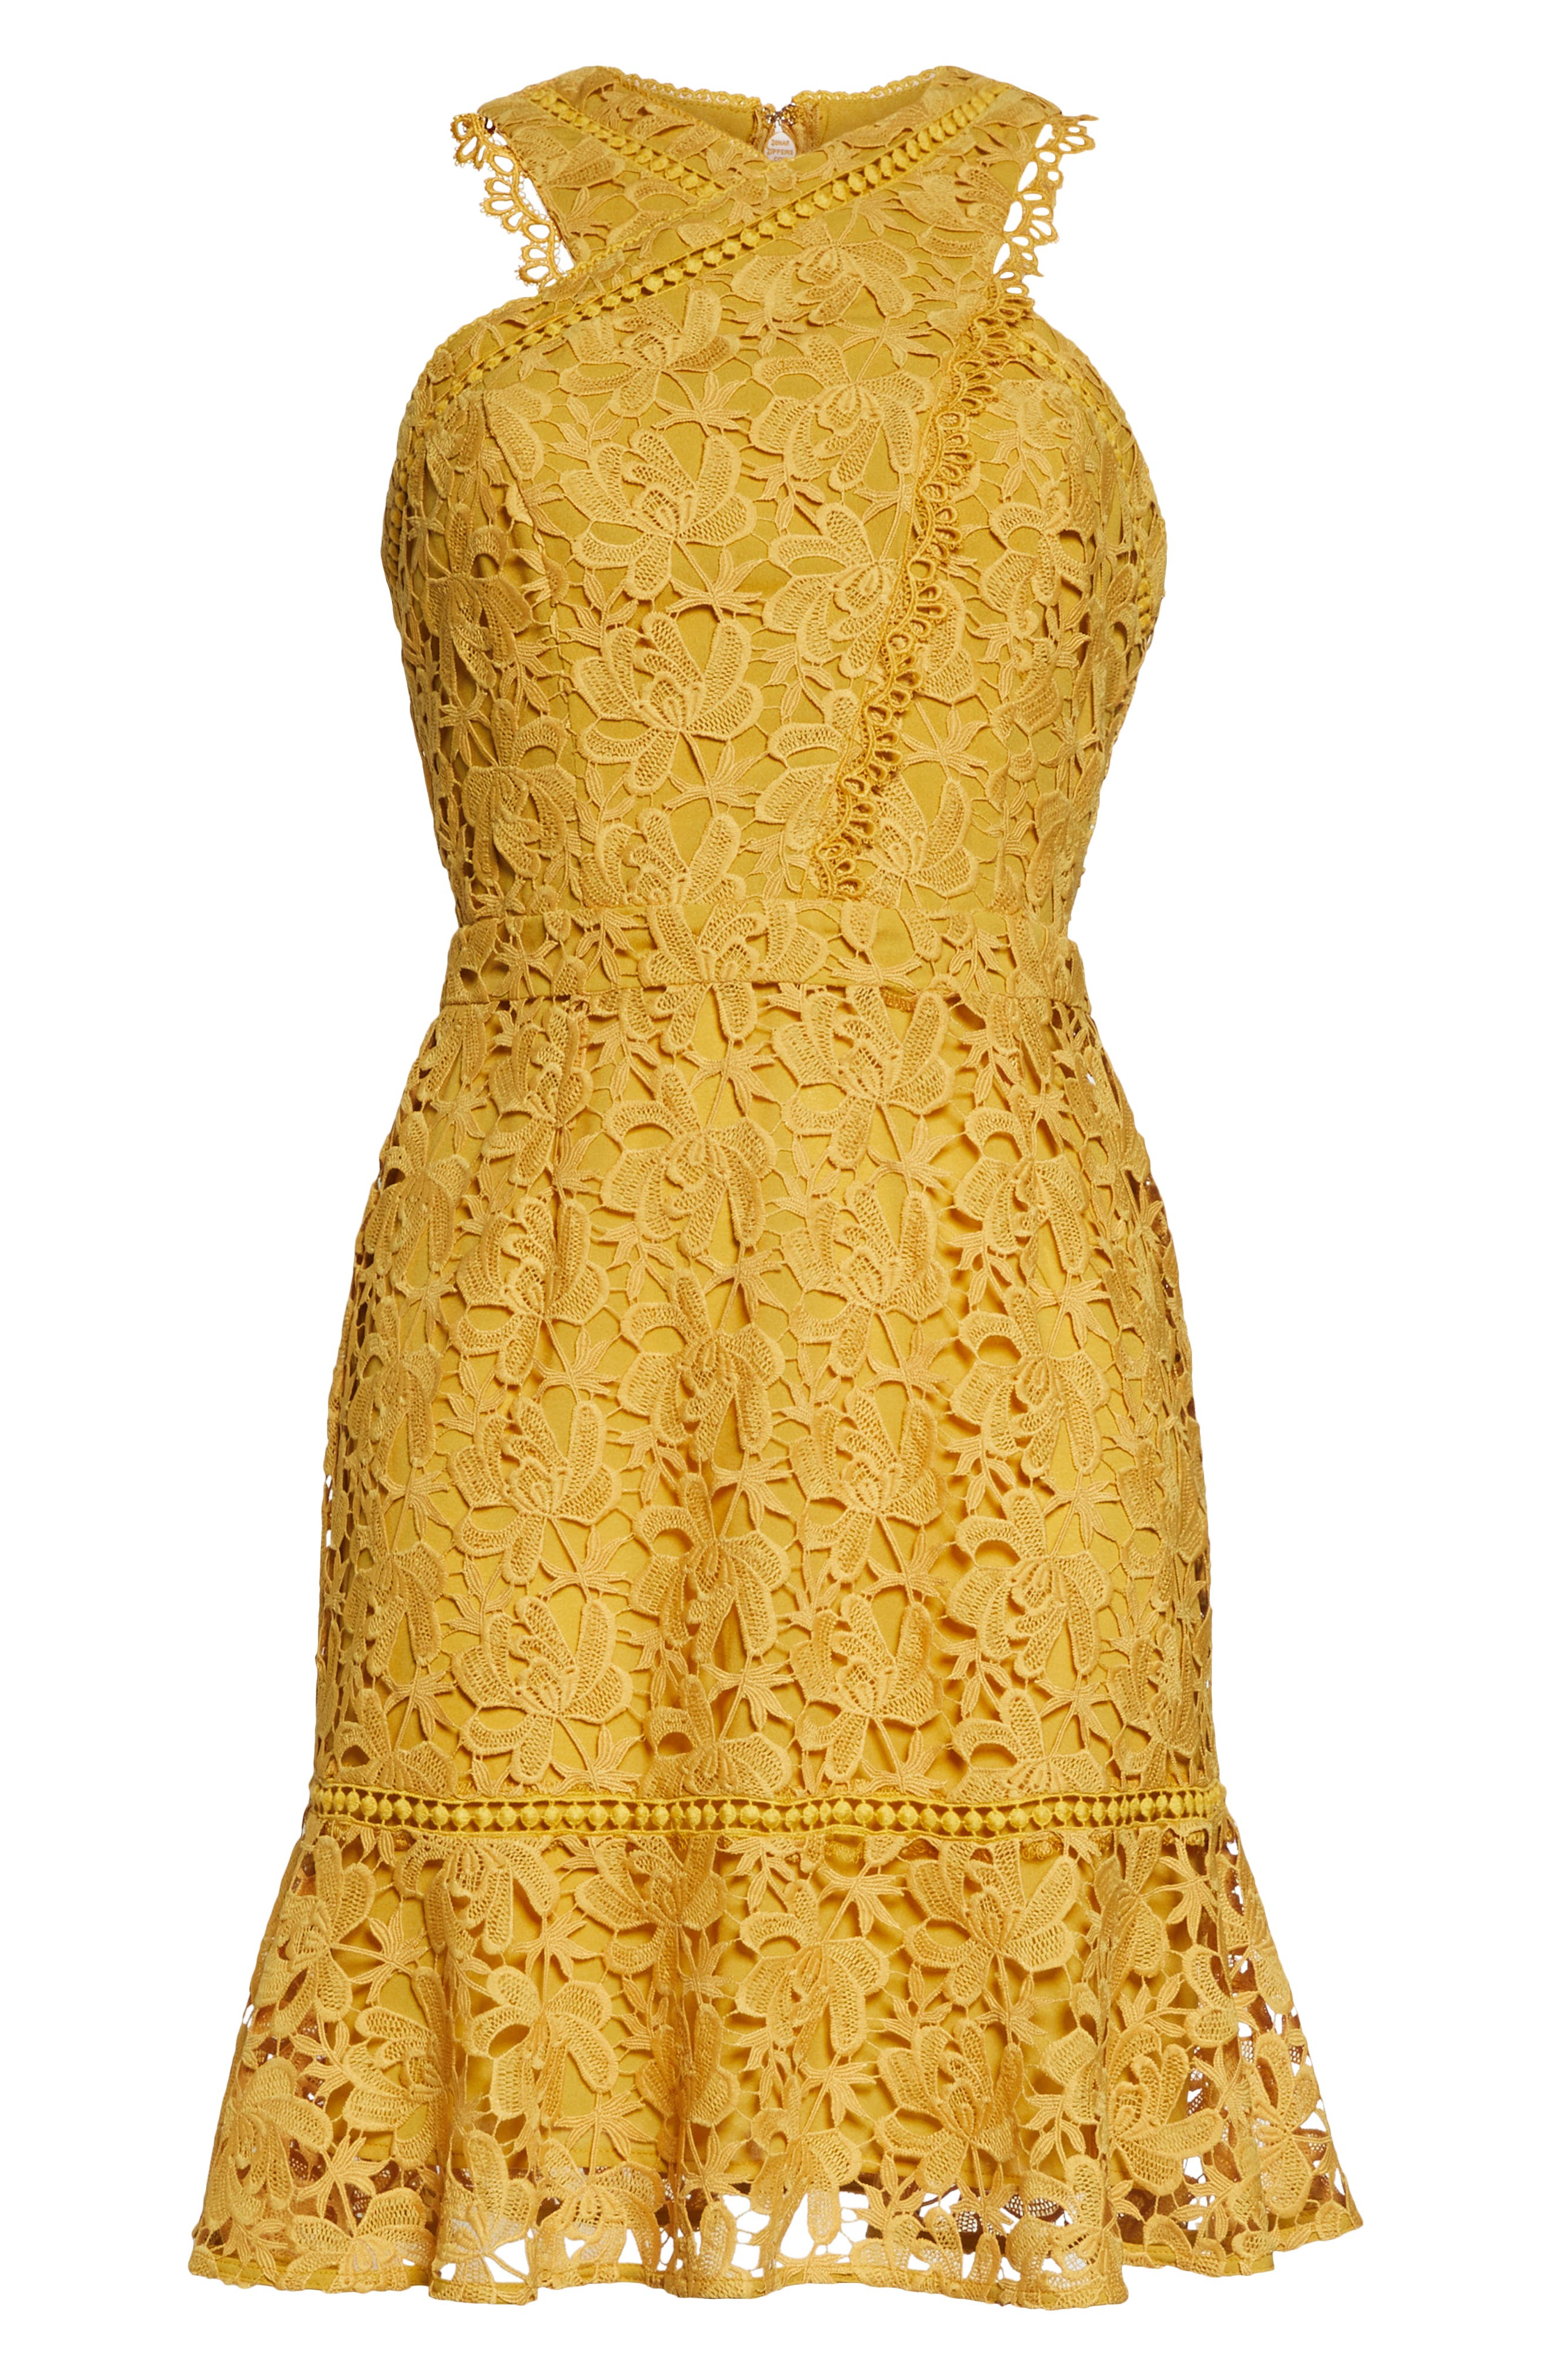 ADELYN RAE,                             Jessie Crisscross Neck Lace Dress,                             Alternate thumbnail 7, color,                             FREESIA